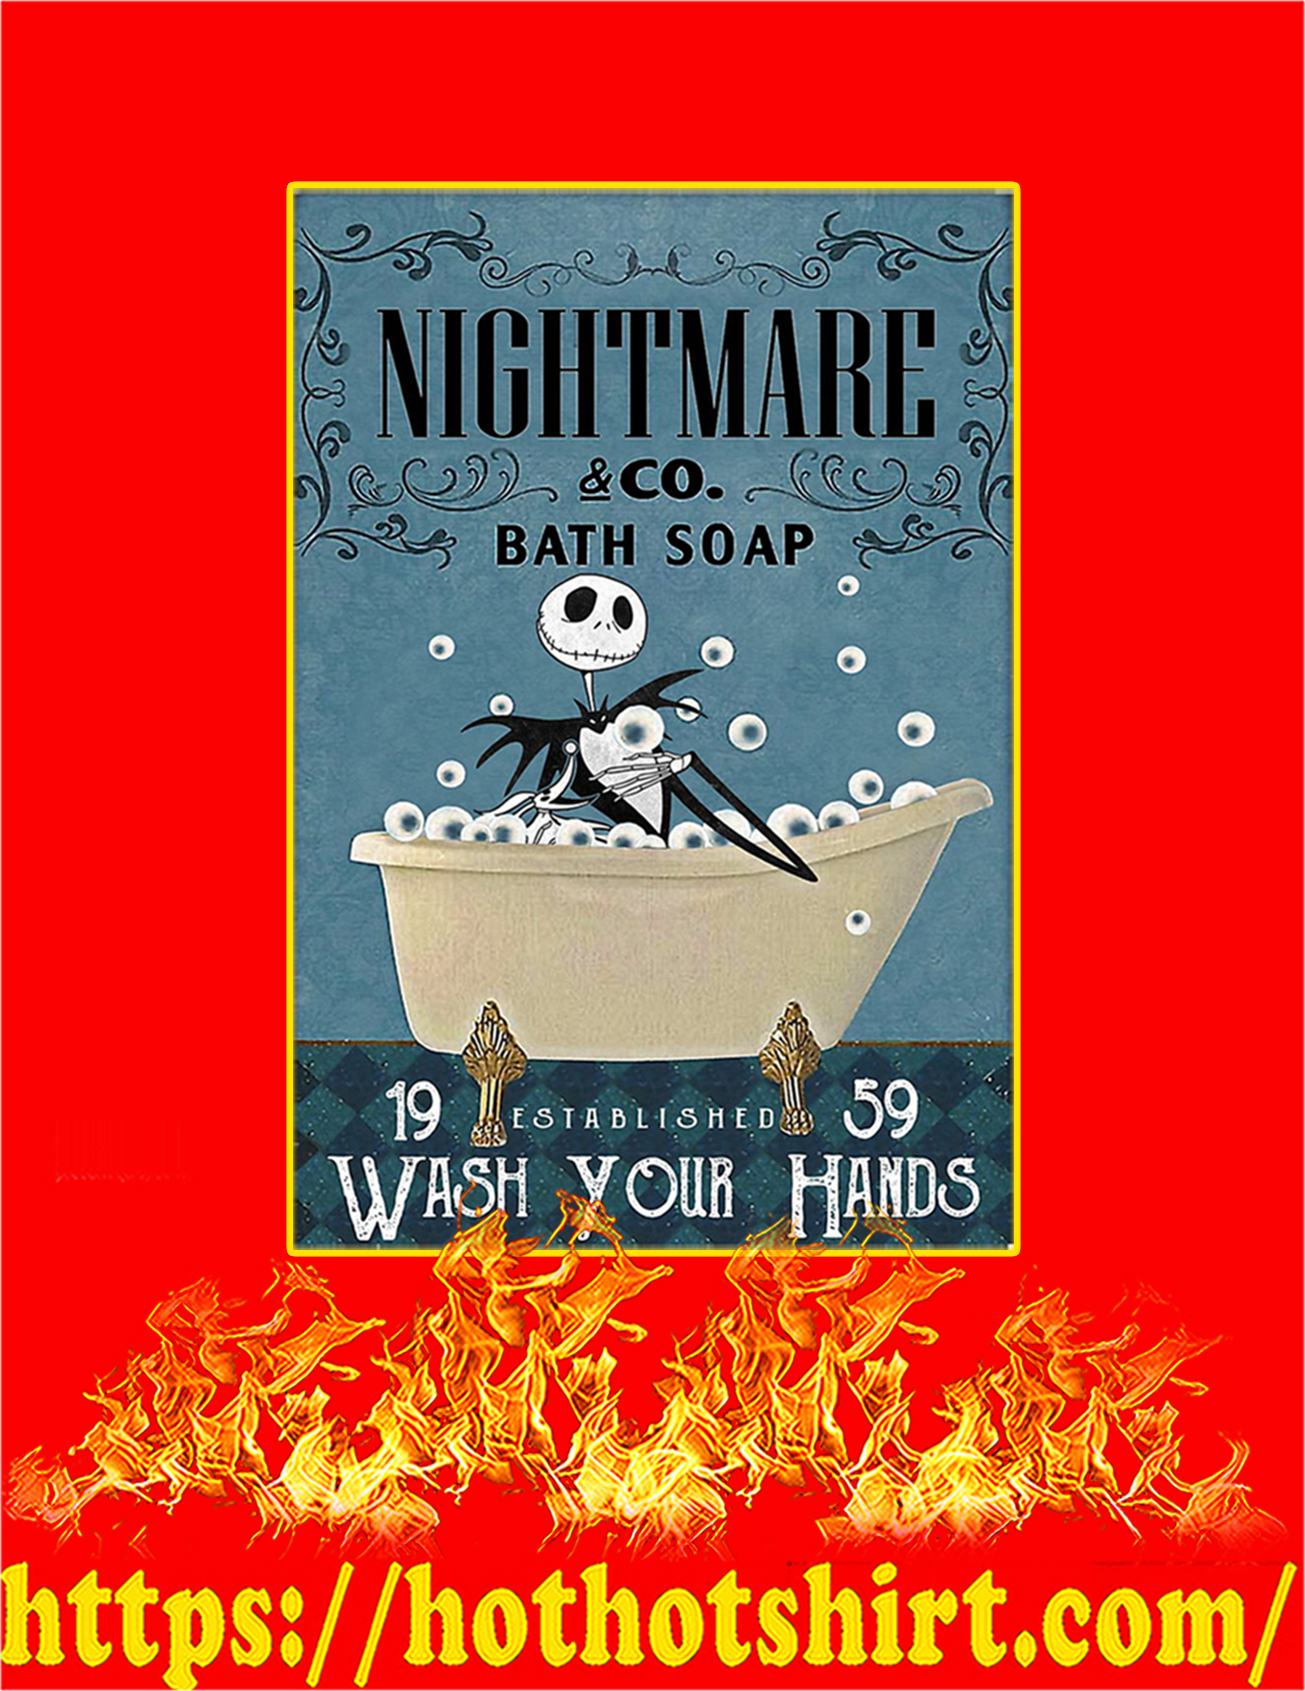 Bath soap company nightmare wash your hands poster - A3